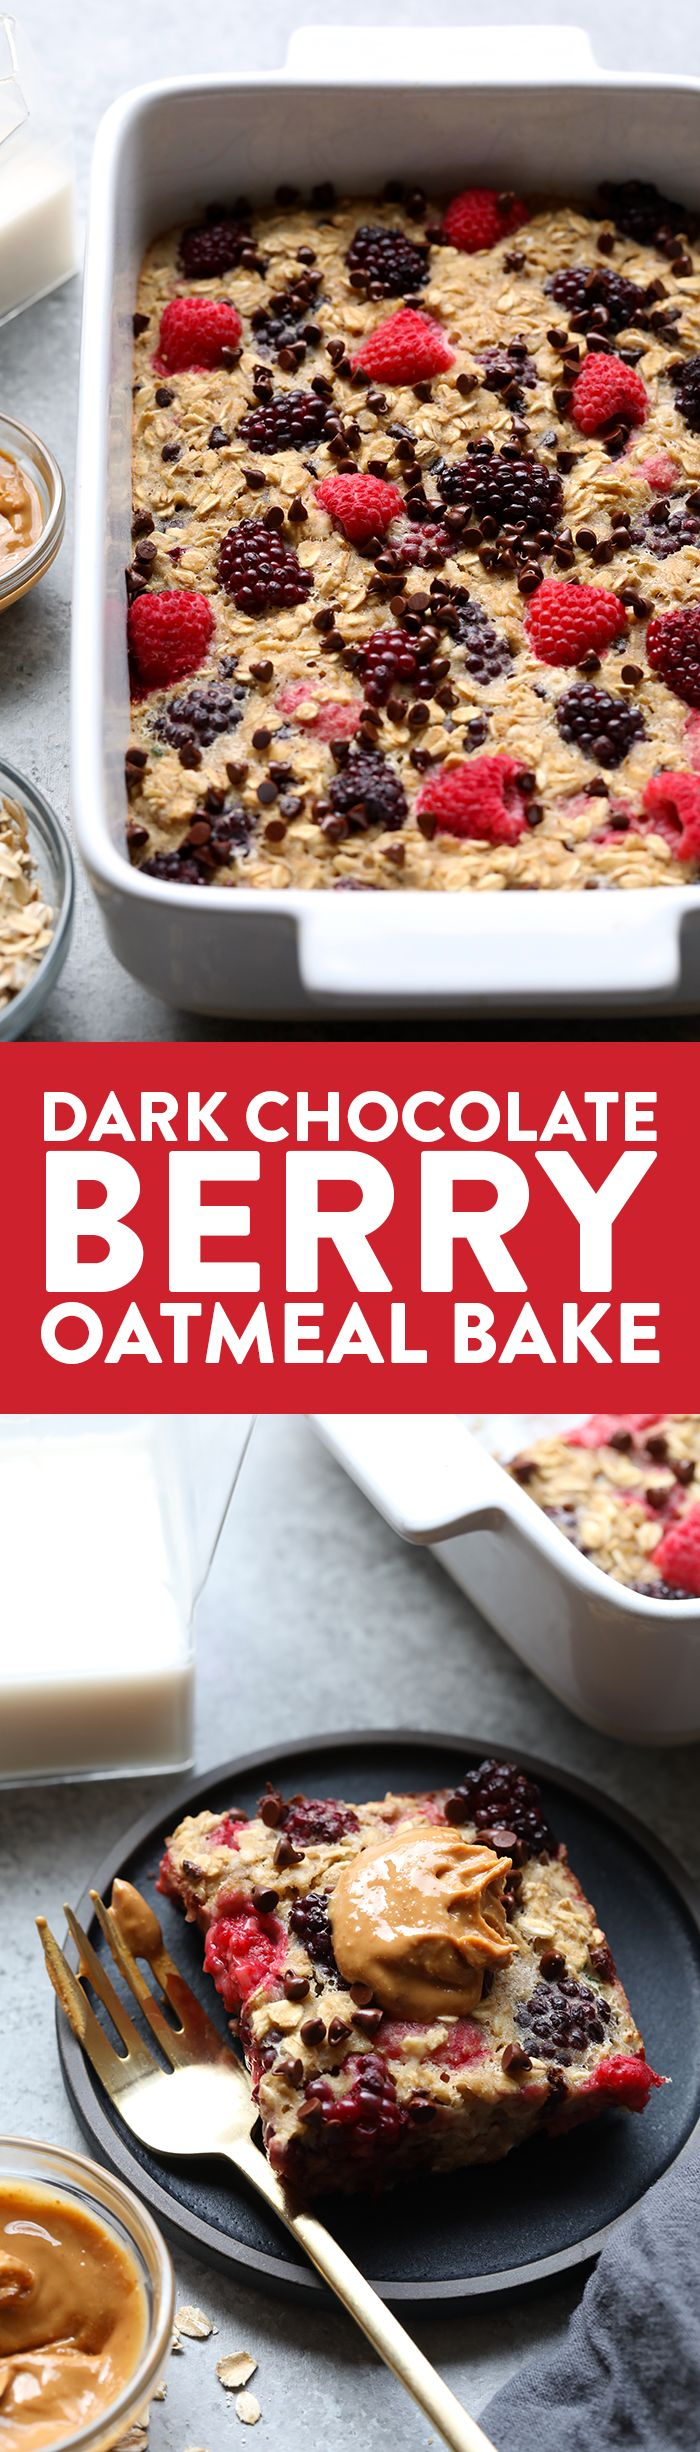 VIDEO: How to Make a Dark Chocolate Berry Oatmeal Bake - Fit Foodie Finds